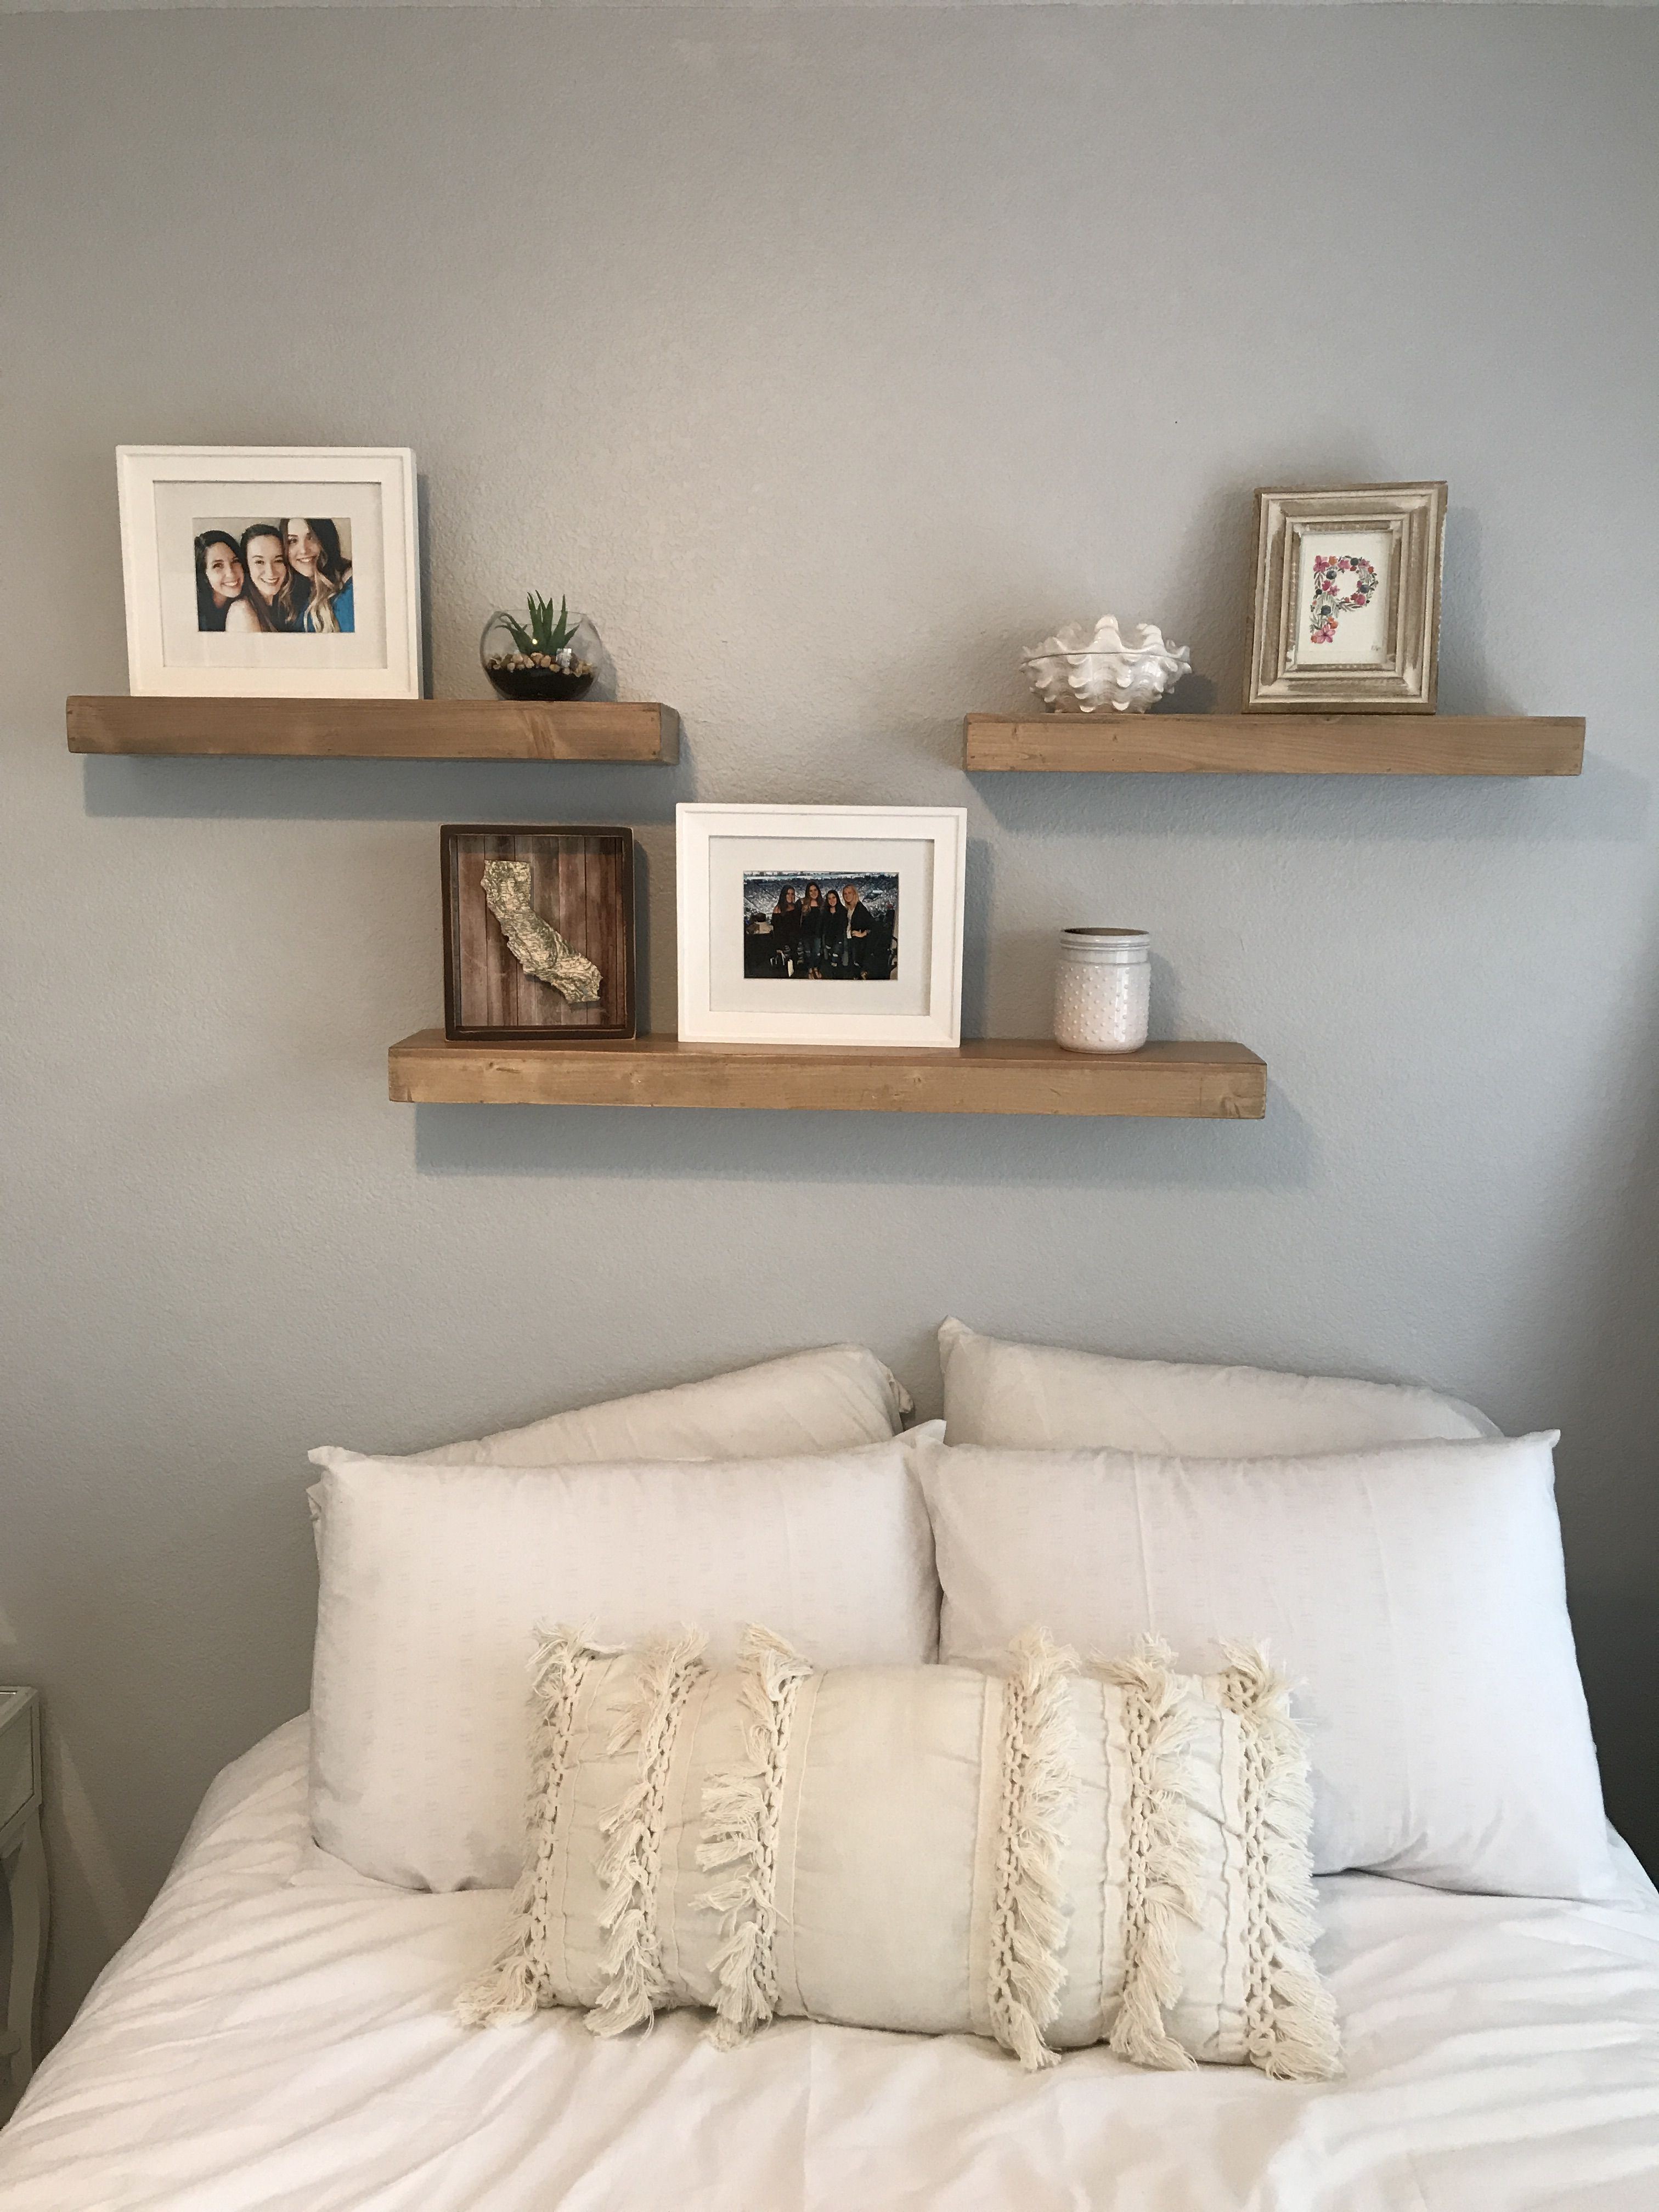 3 shelves above bed white and grey bedroom fun room - Bedroom wall shelves decorating ideas ...